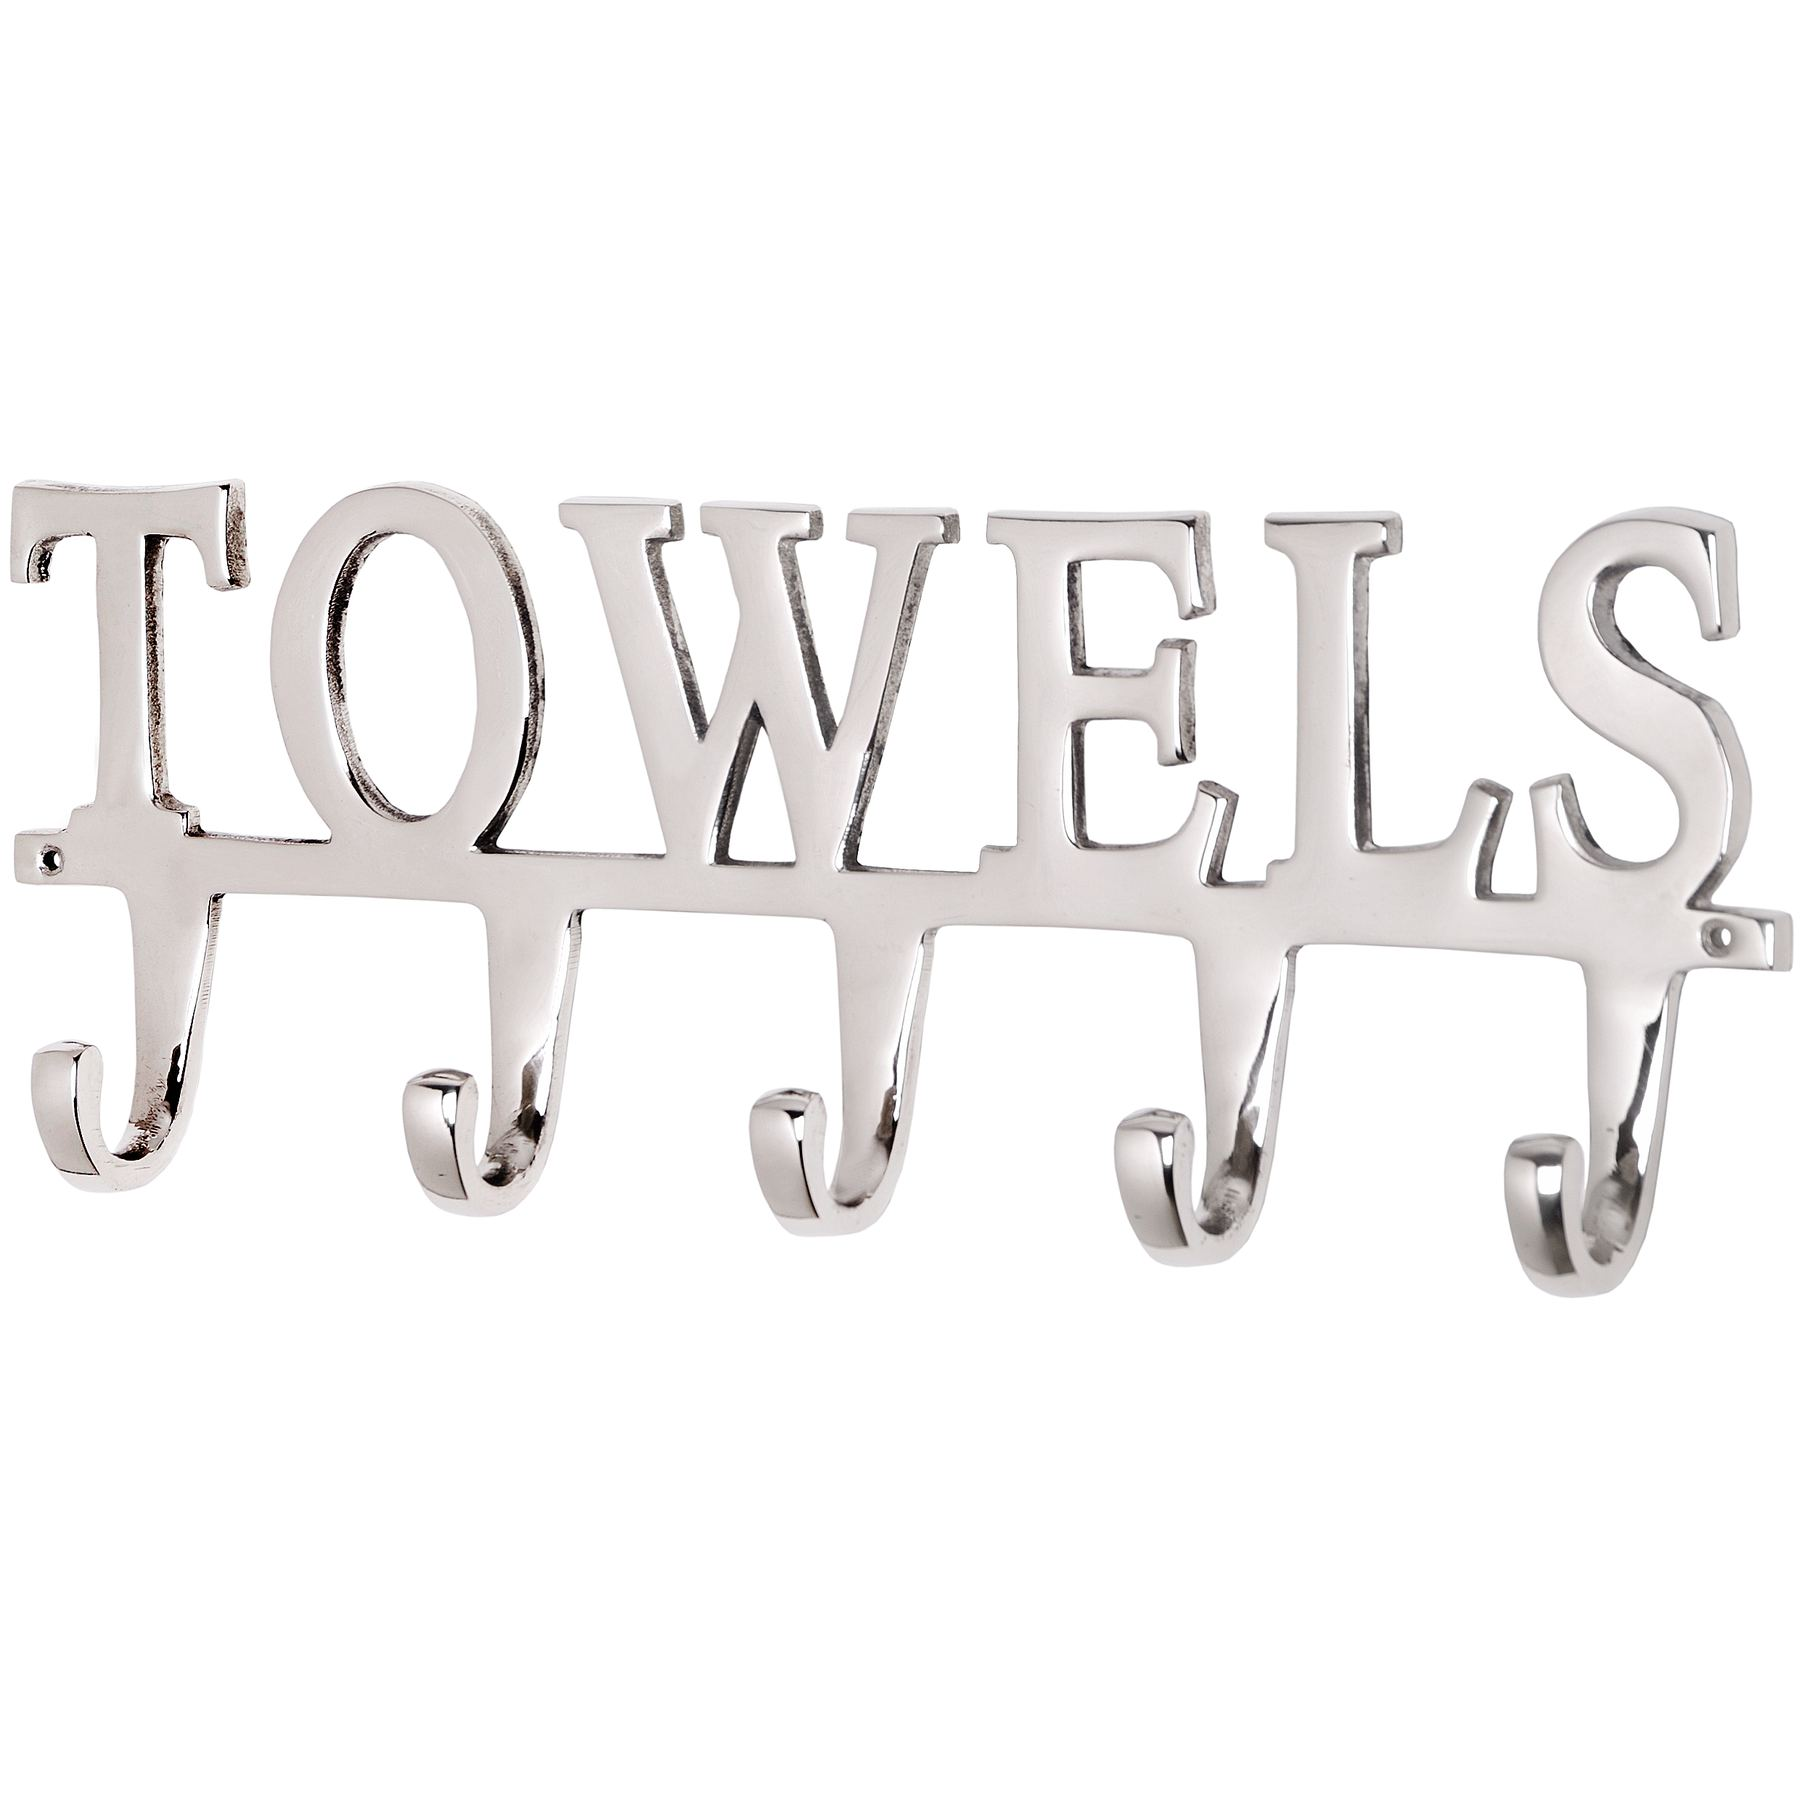 towel hooks. Large Nickel Towel Hook Hooks